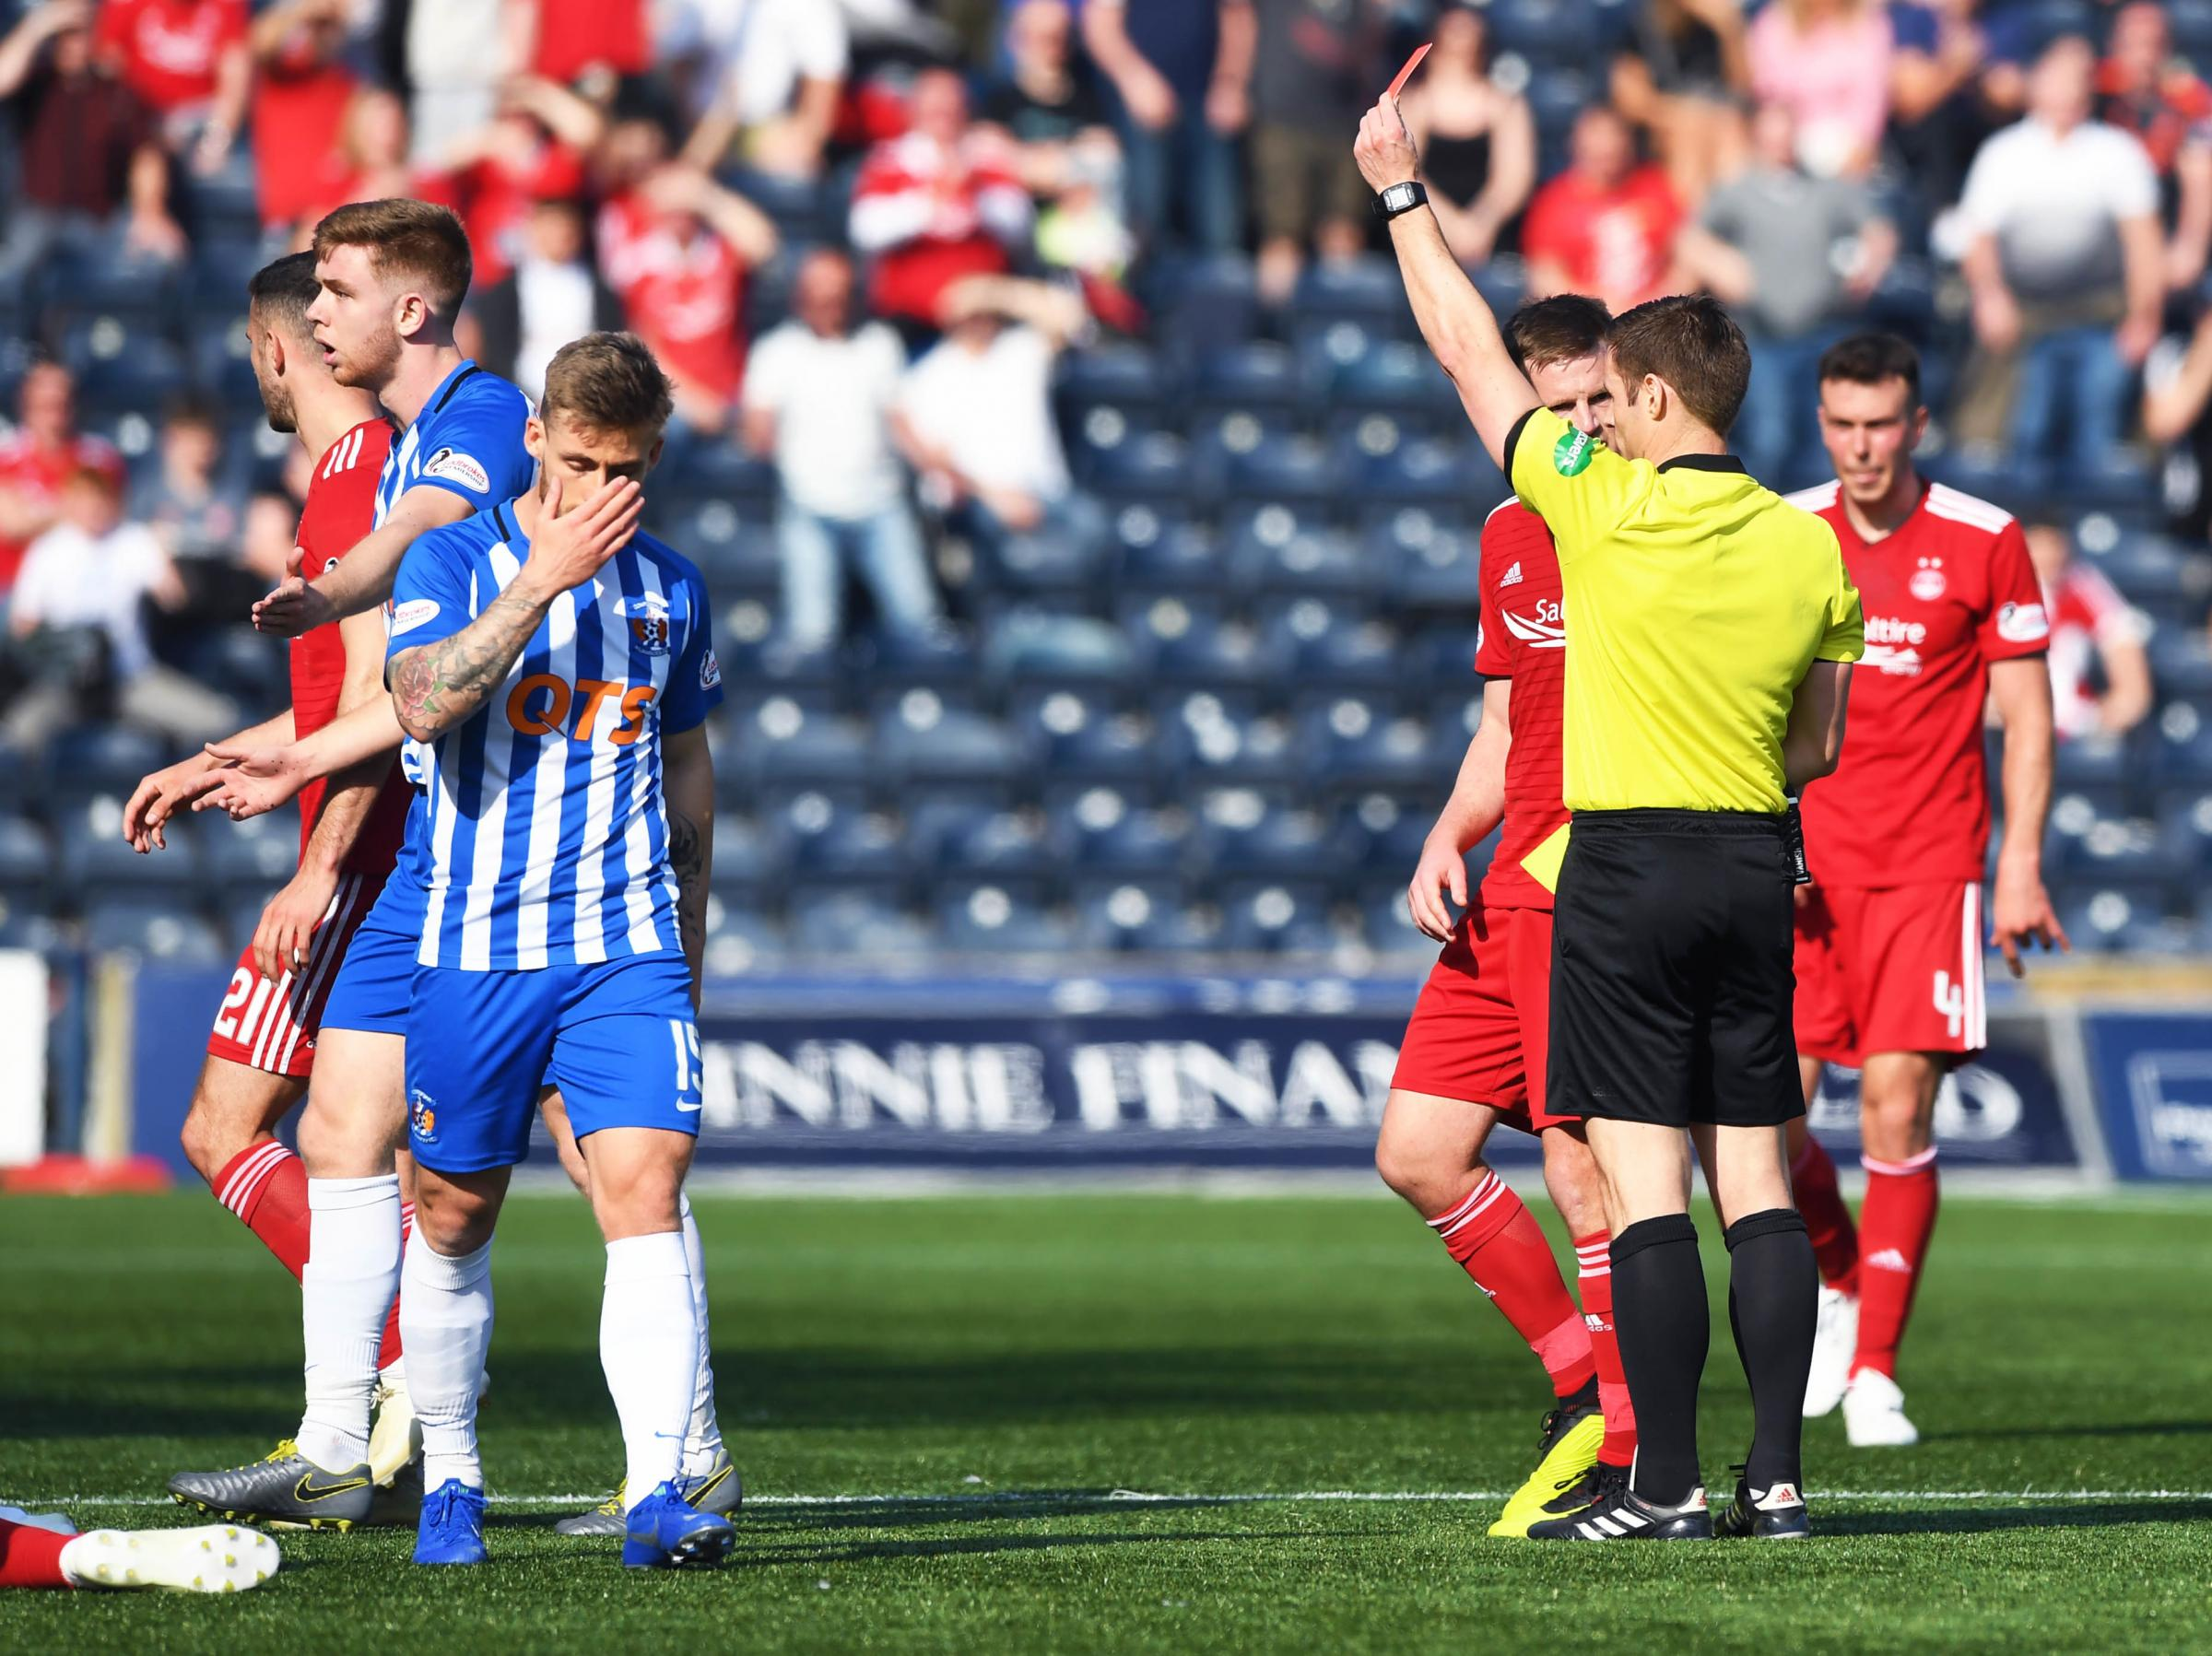 Steven MacLean wasn't a popular man at Rugby Park after sending off three Kilmarnock players.